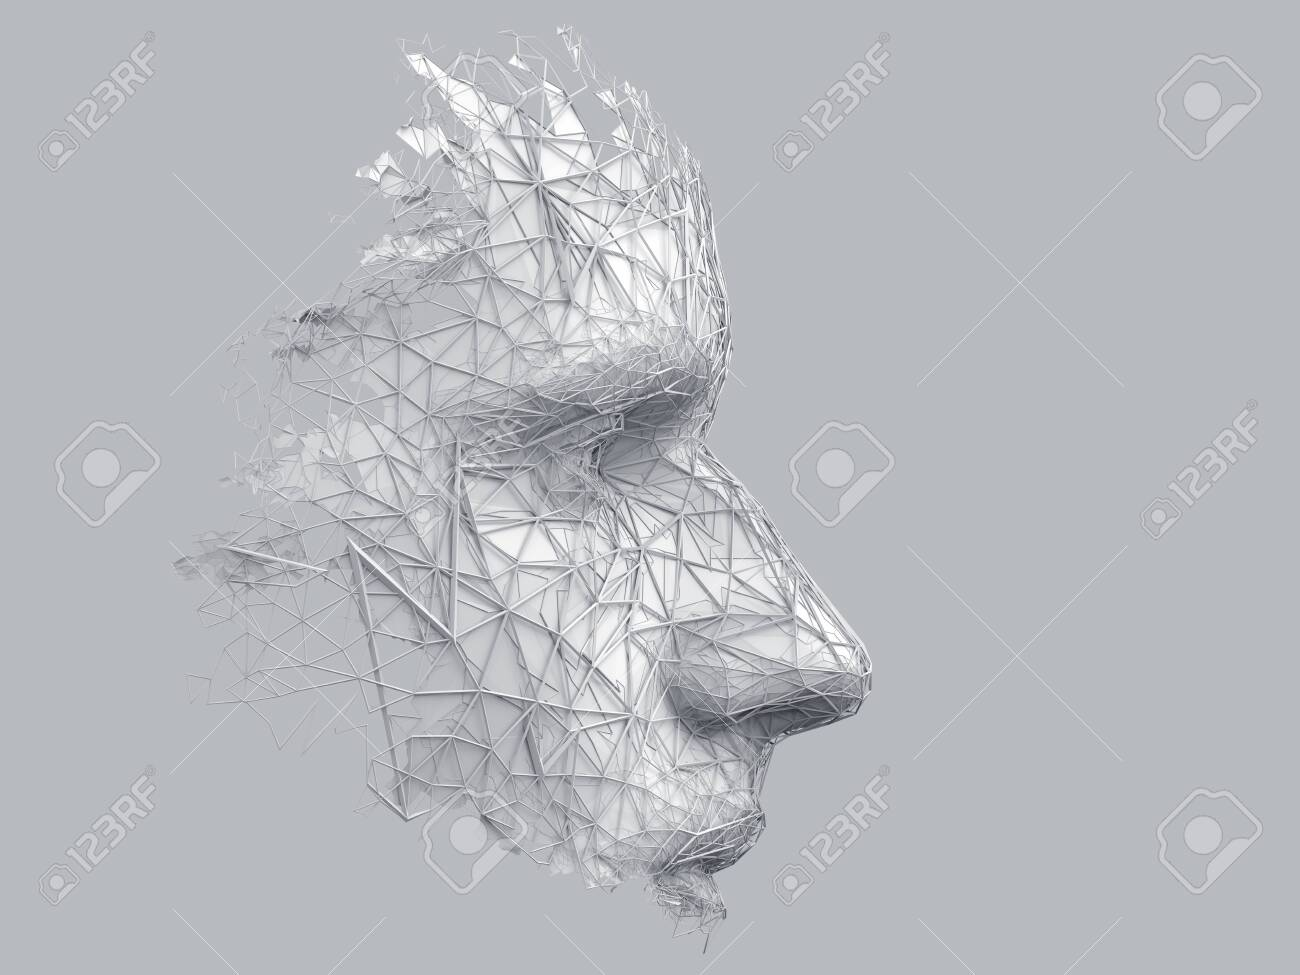 Abstract polygonal human face, 3d illustration of a cyborg head construction, artificial intelligence concept - 125360255